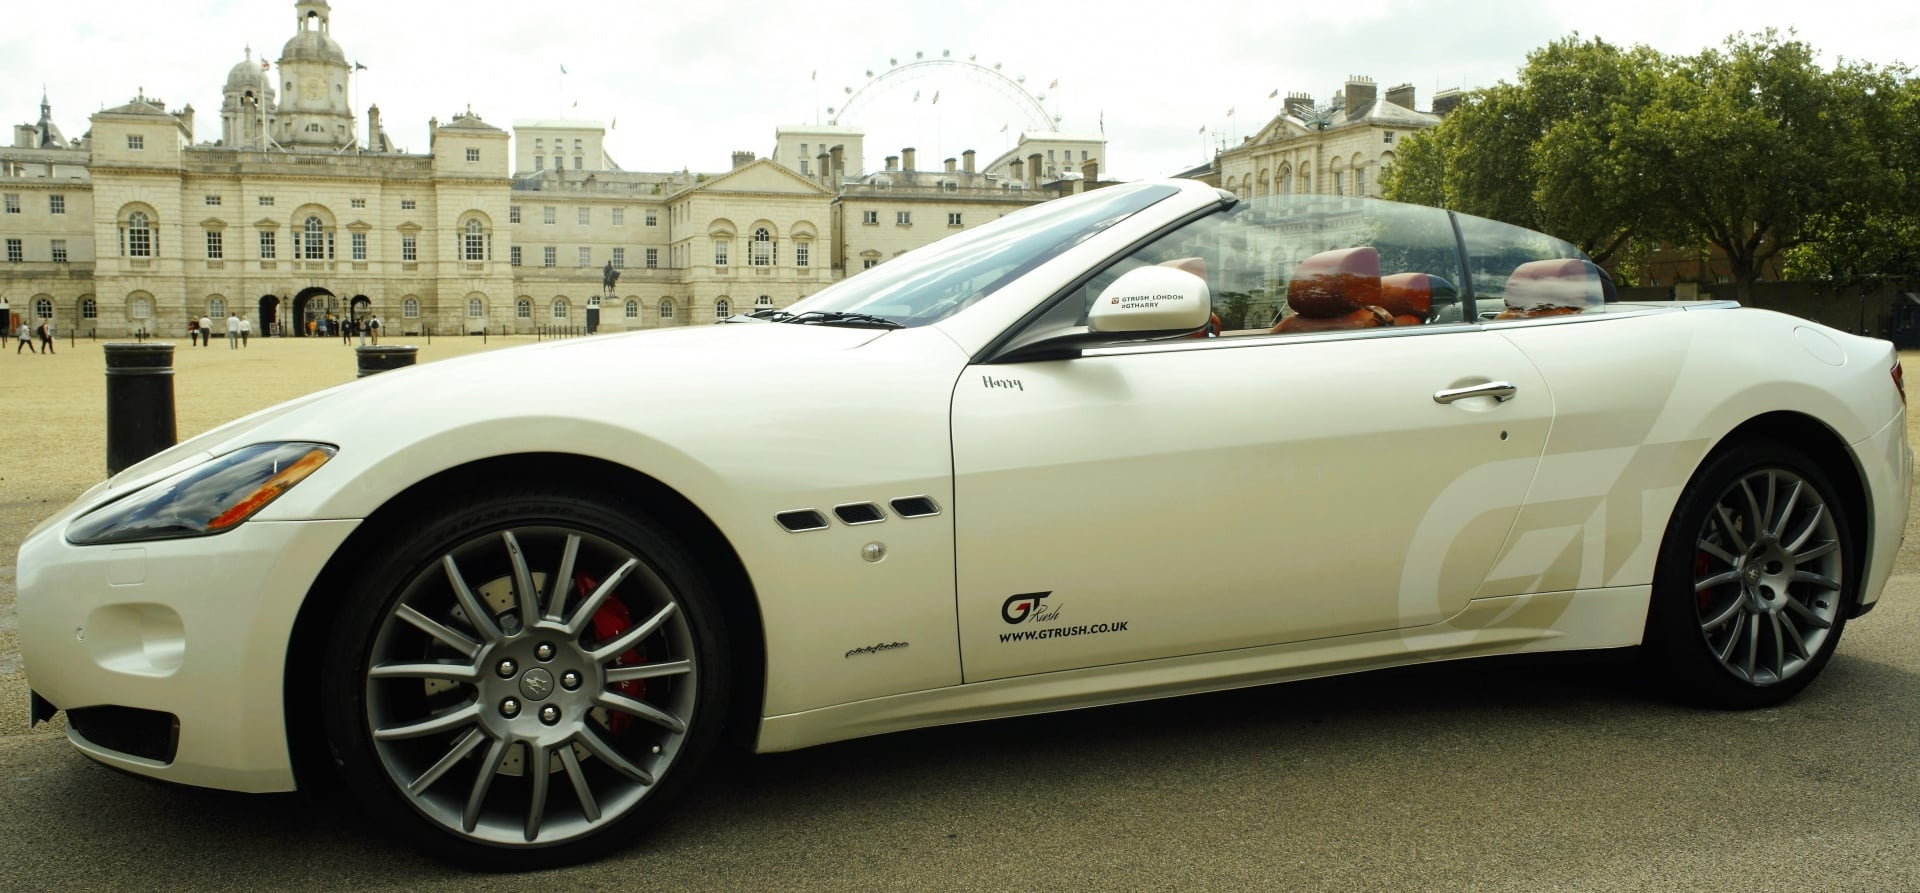 London On-Road Maserati Driving Experience - 30 Minutes-2